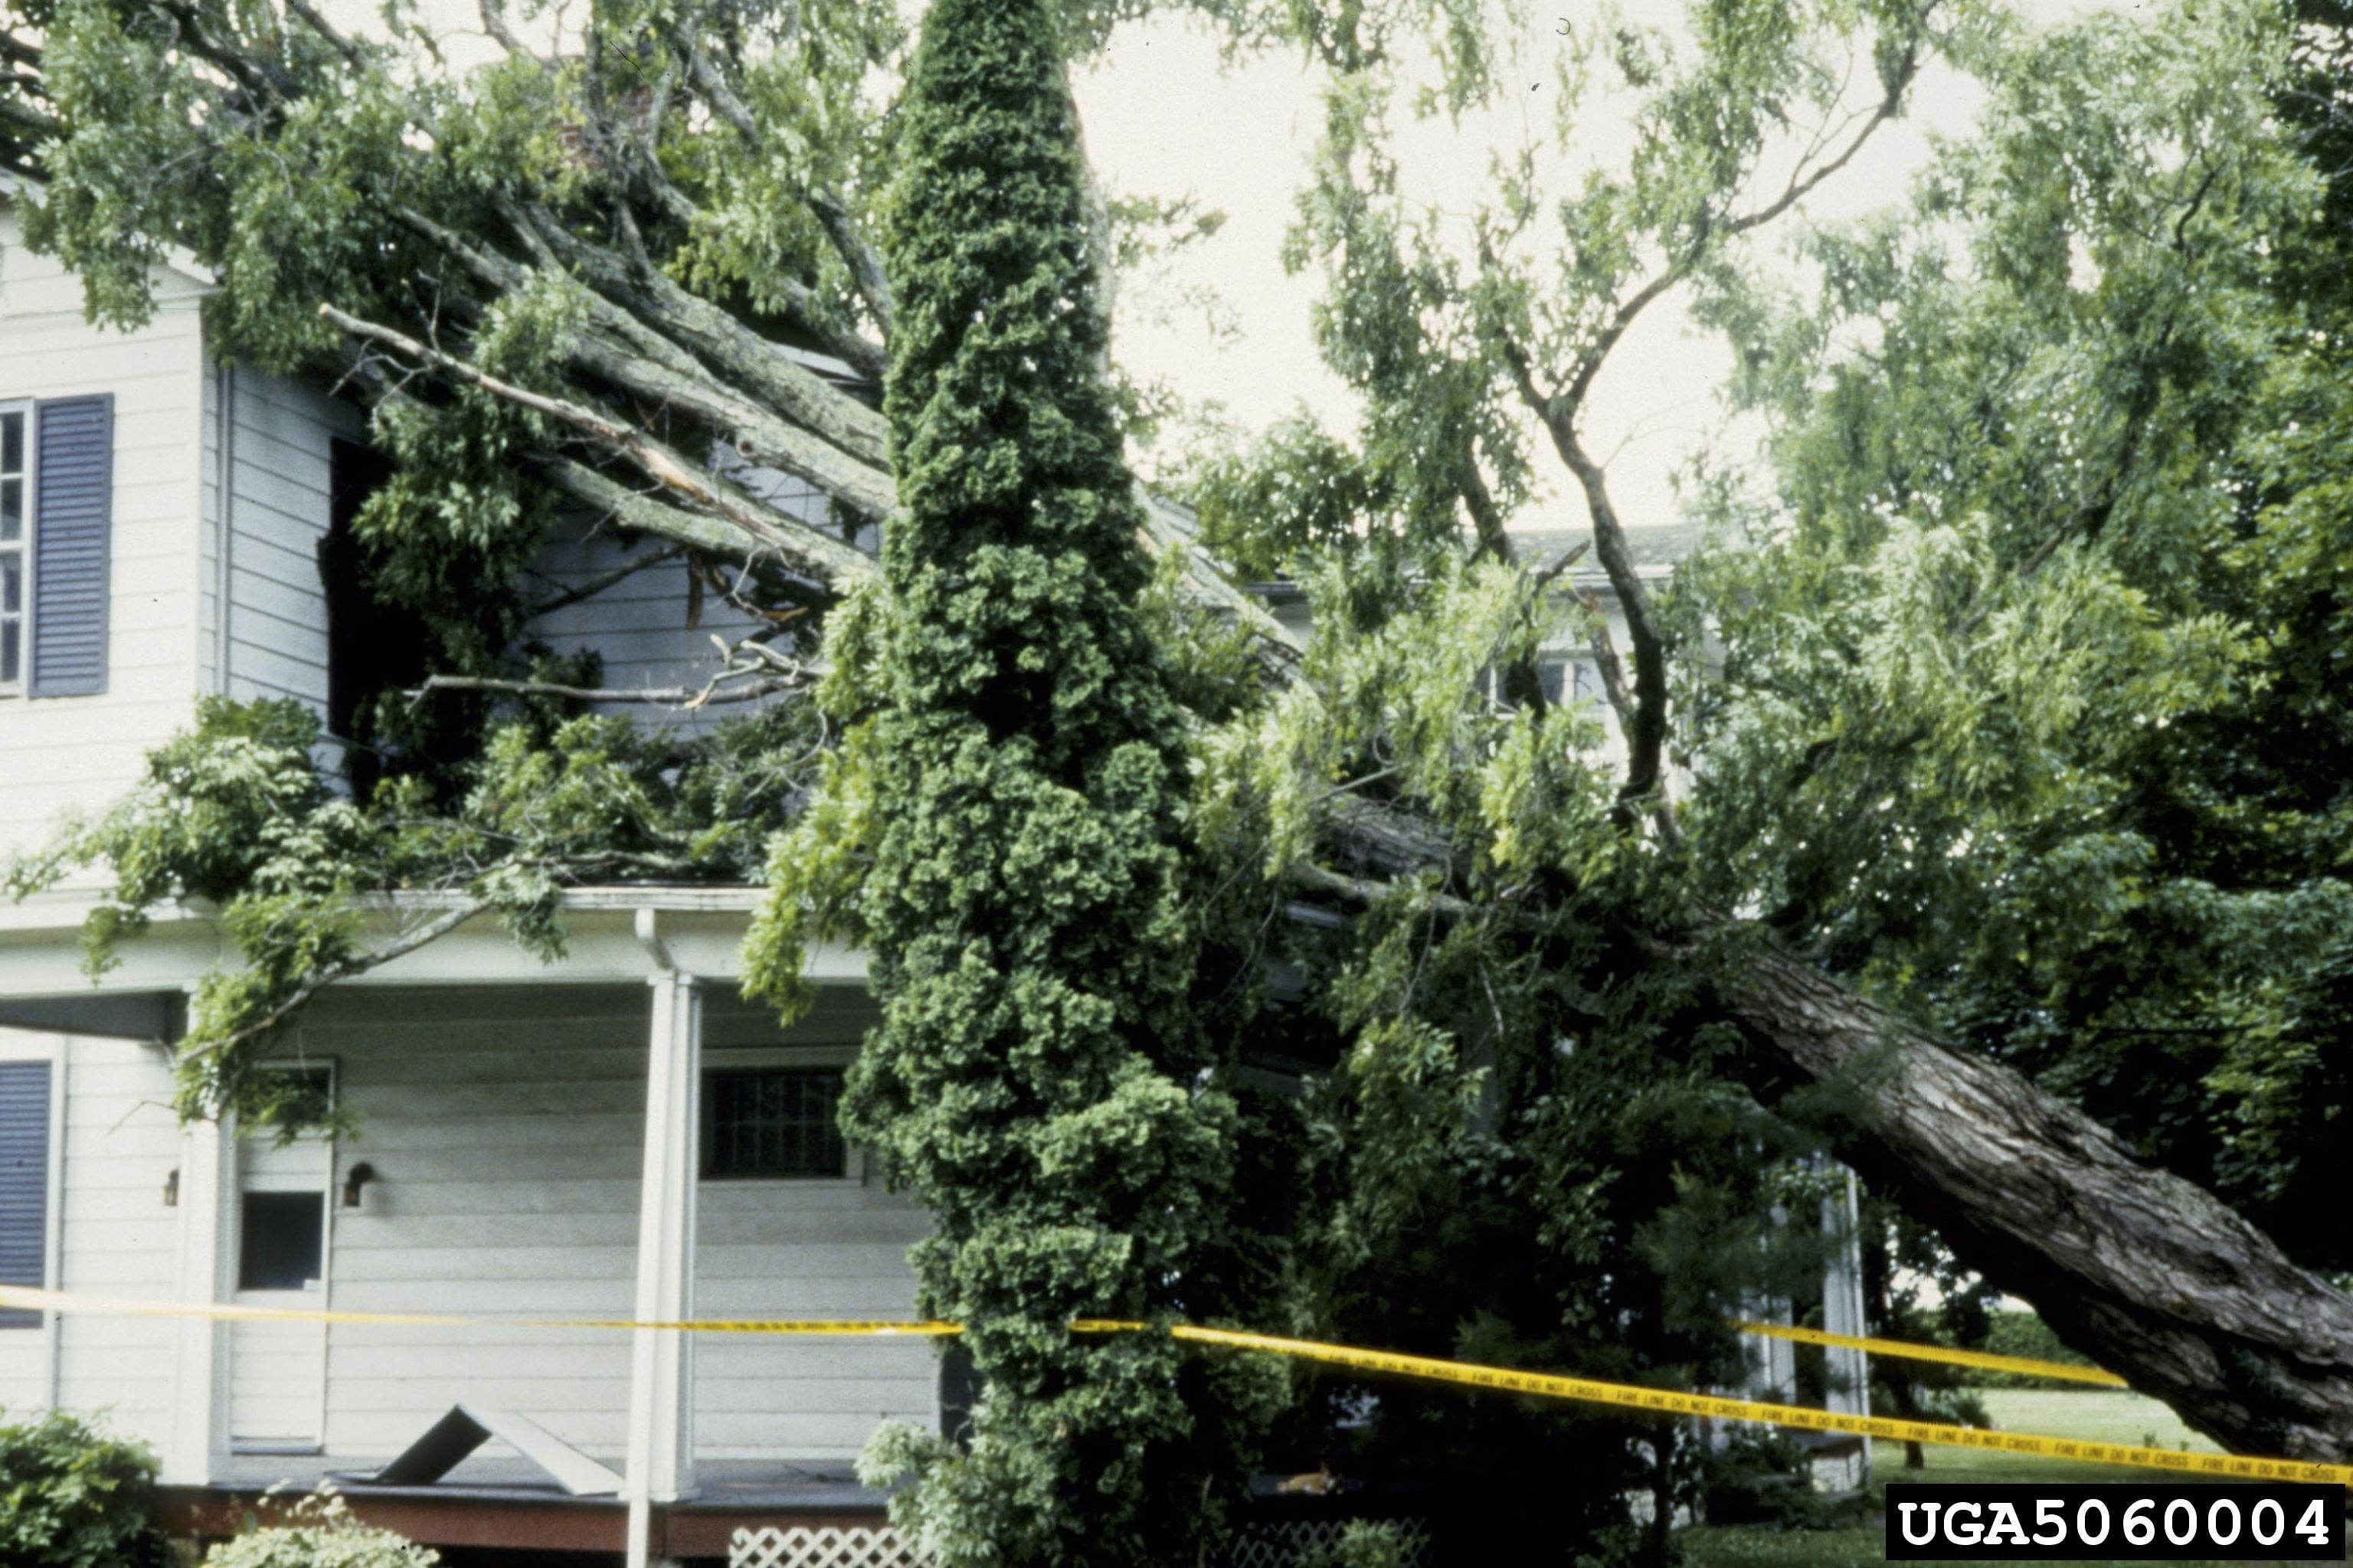 WEBINAR: Readiness, Response, Recovery - Are your Trees Prepared for Upcoming Storms?